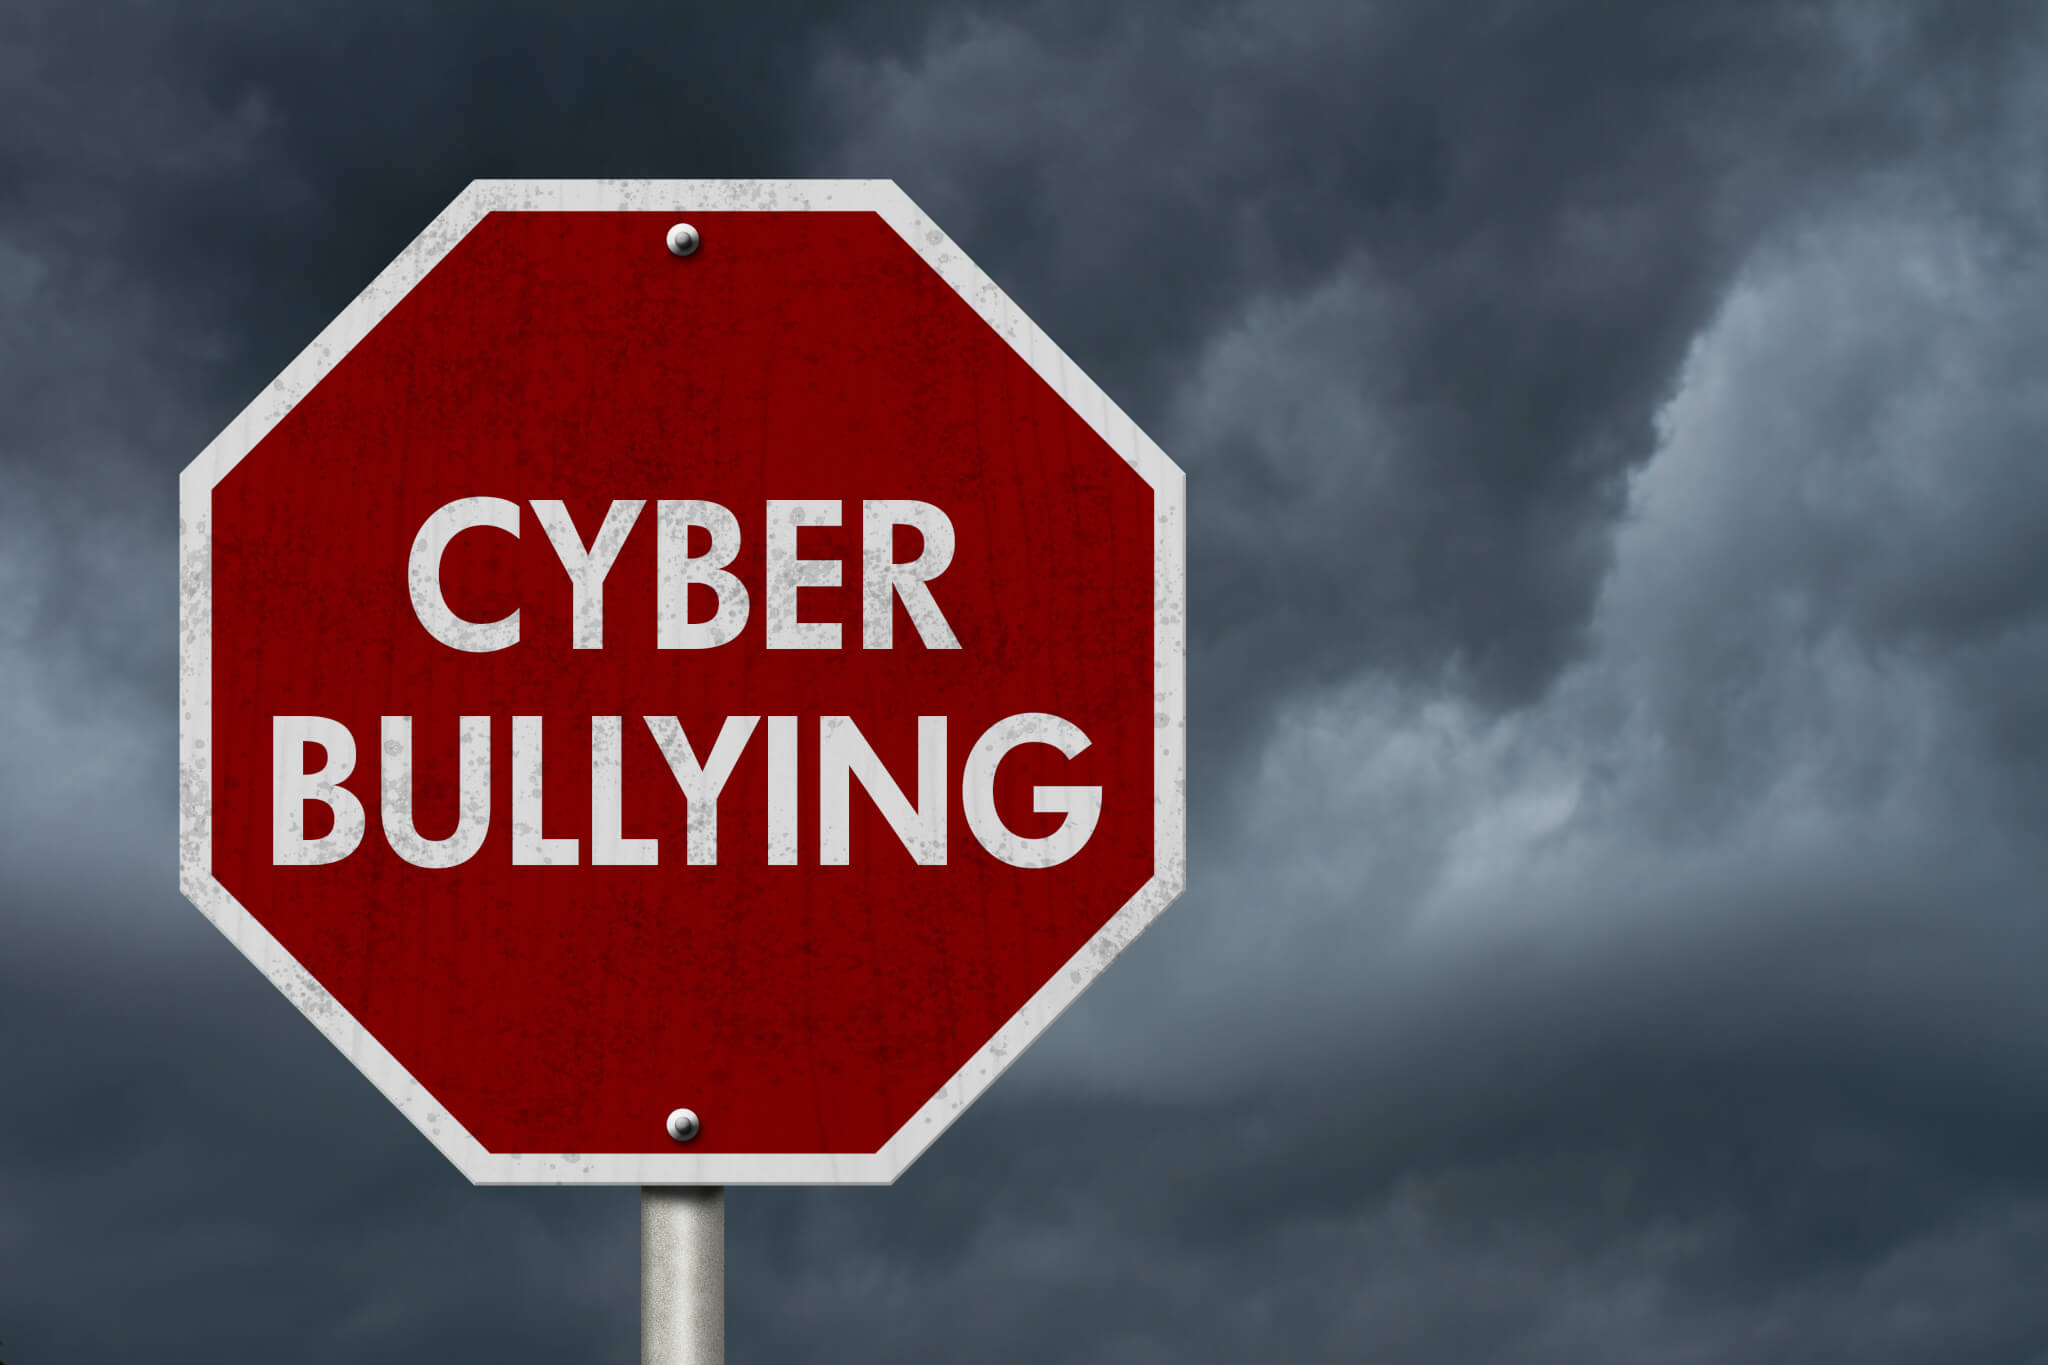 Cyberbullying How To Spot It And Stop It From Happening